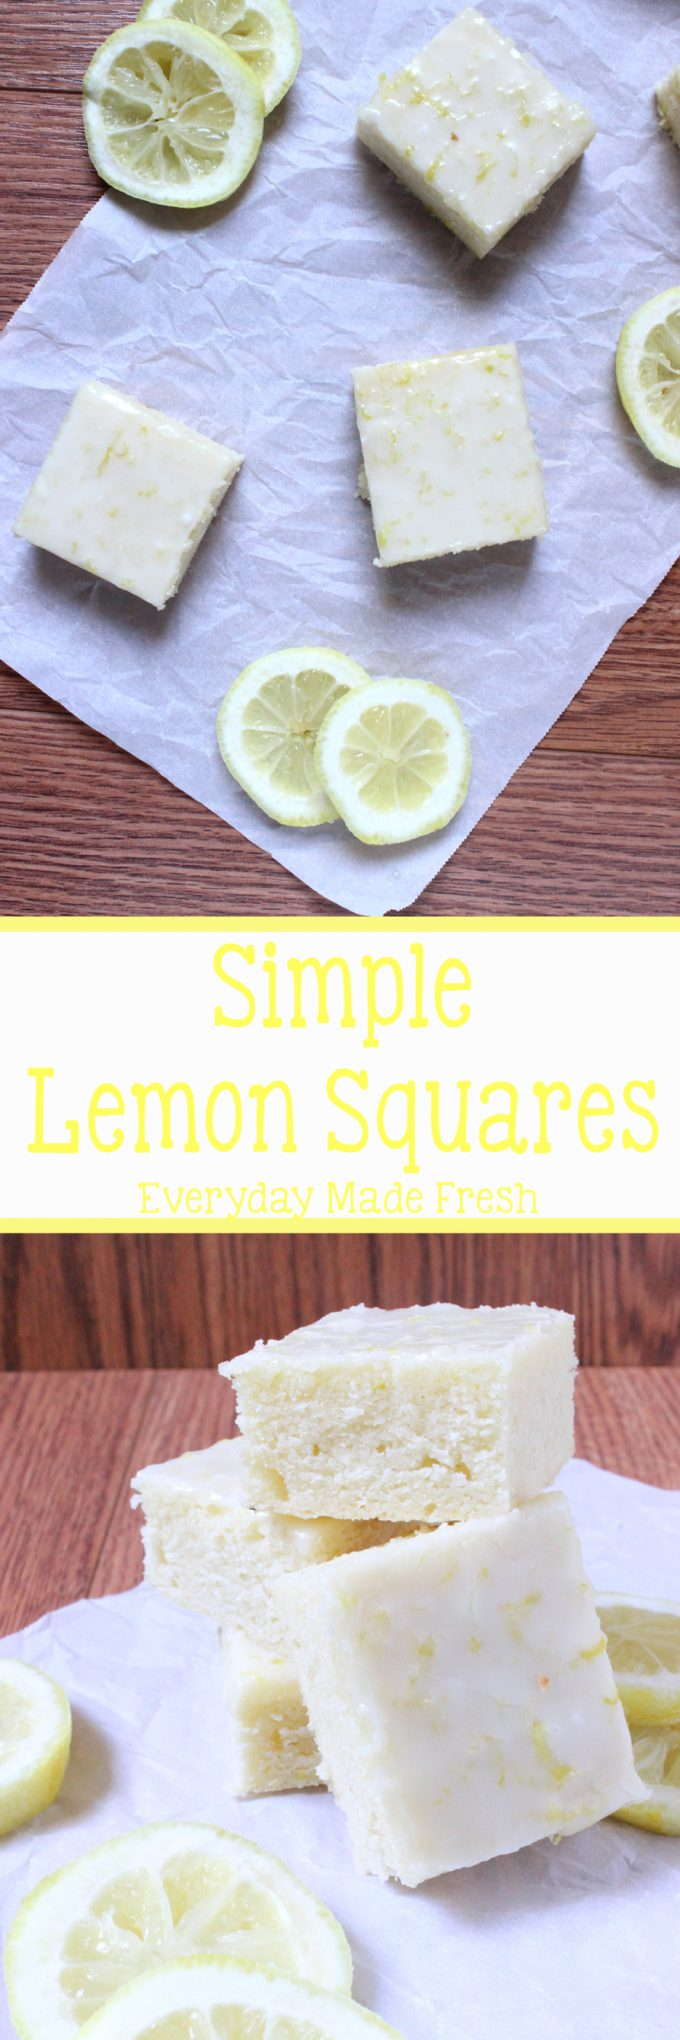 Slightly sweet and slightly tangy, these Simple Lemon Squares are the perfect little sweet treat anytime! | EverydayMadeFresh.com